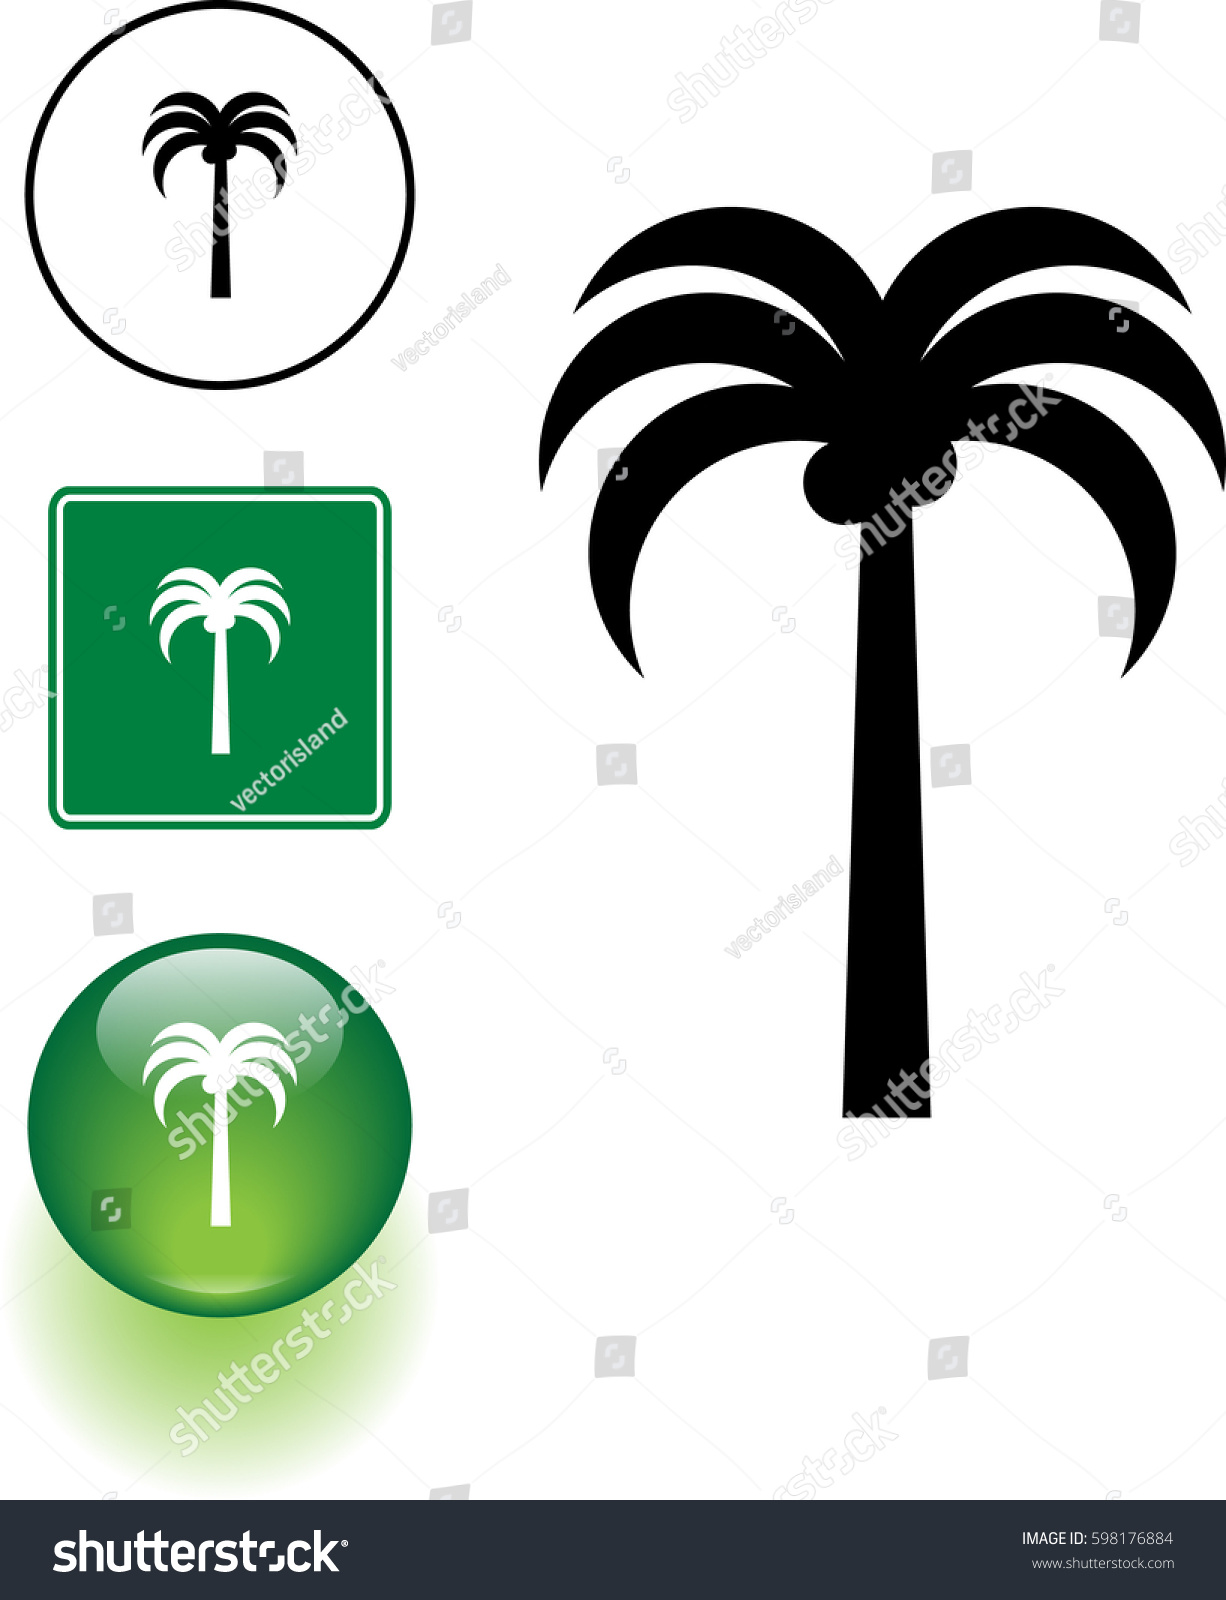 Palm Tree Symbol Sign Button Stock Vector Royalty Free 598176884